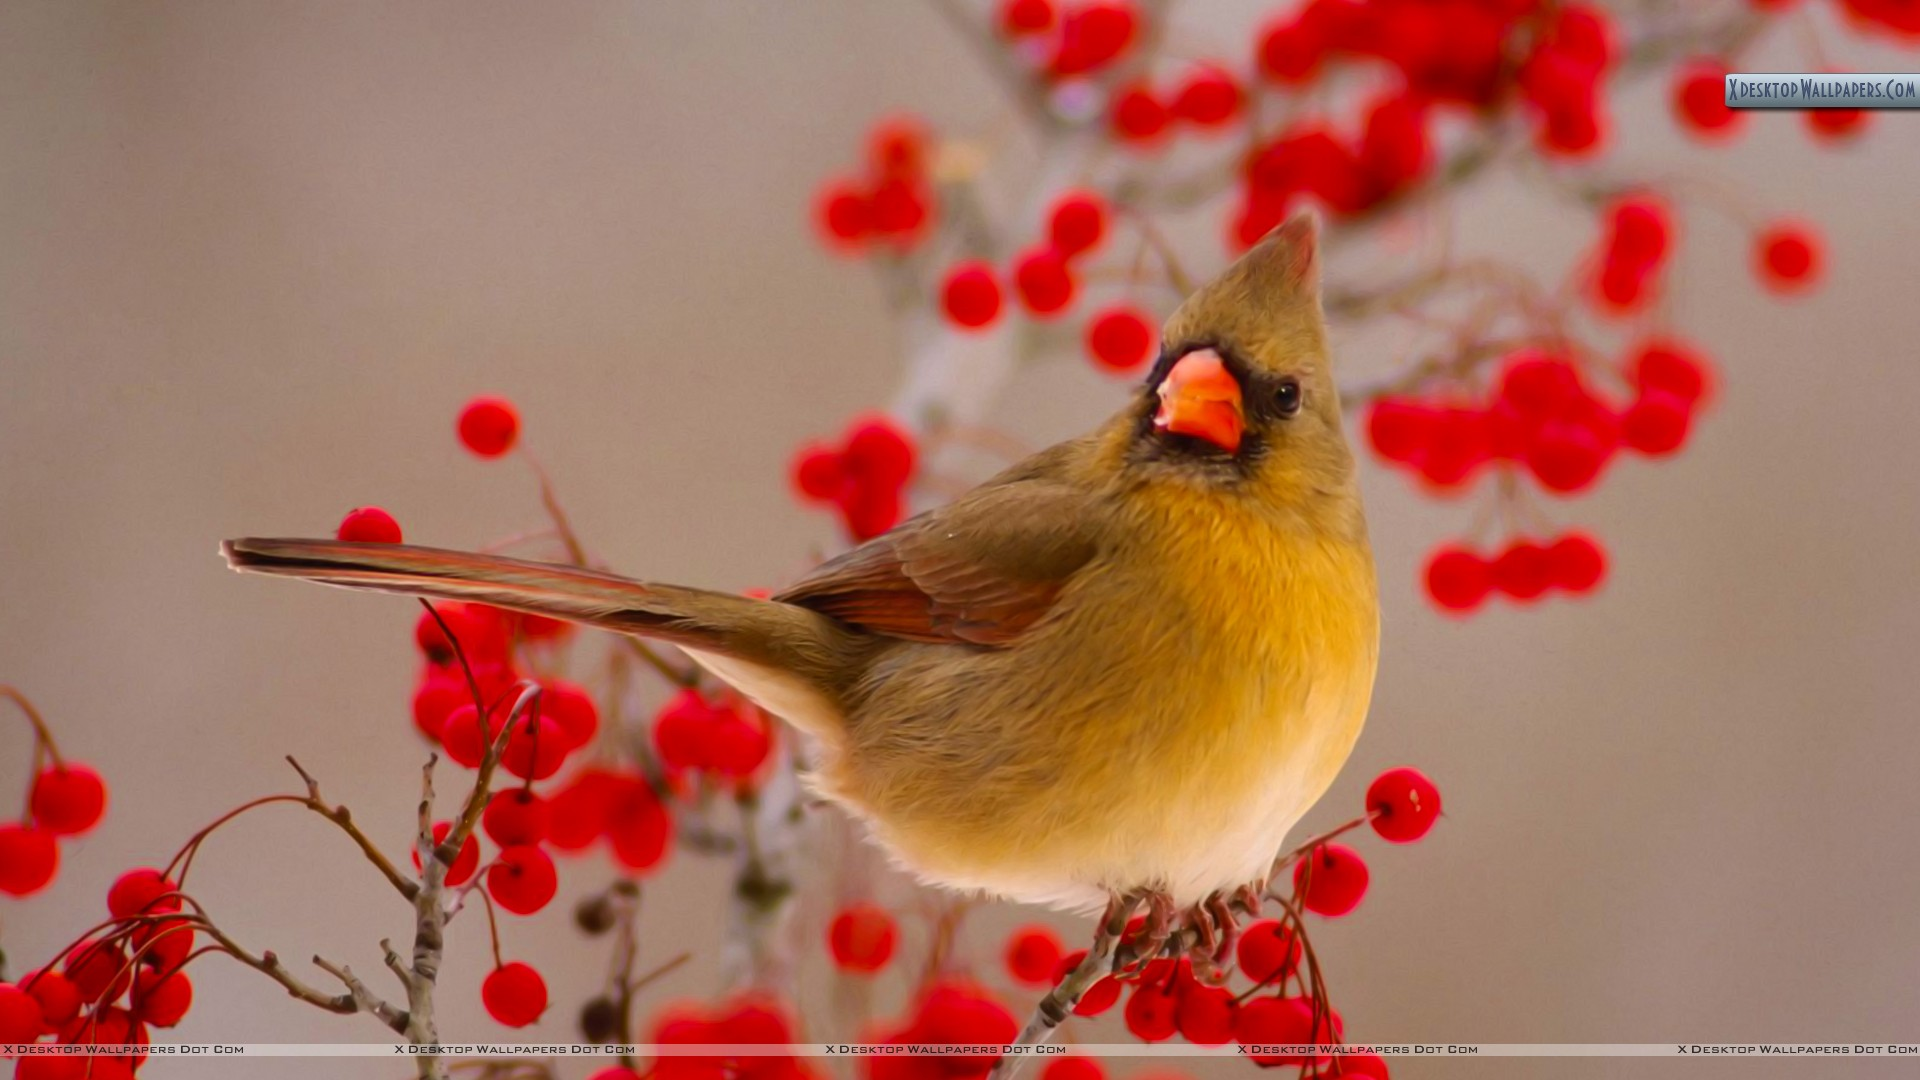 Female Northern Cardinal Among Hawthorn Berries Wallpaper 1920x1080